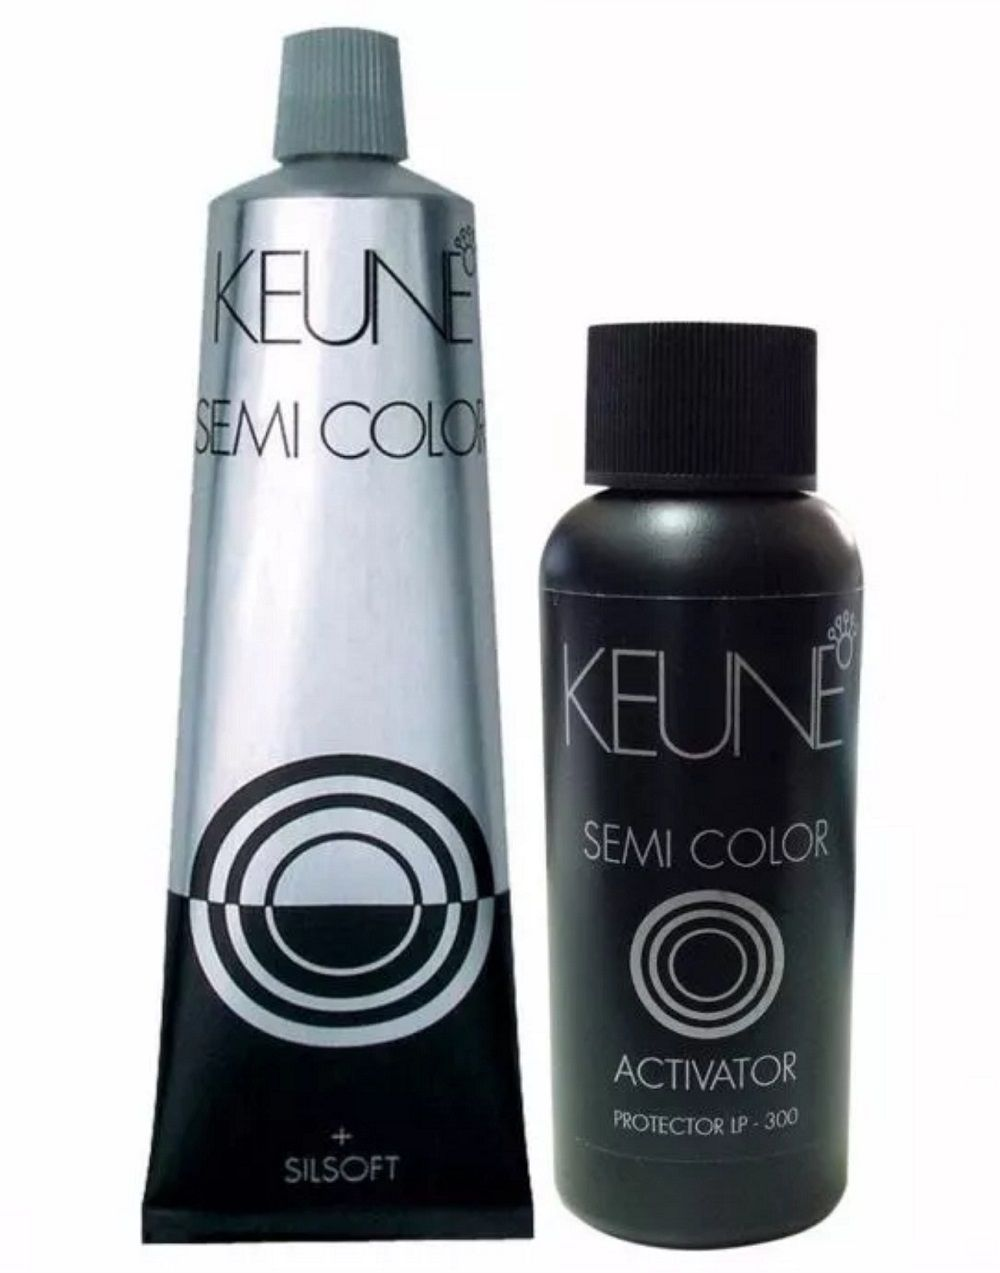 Kit Keune Semi Color 60ml - Cor 7.35 - Louro Médio Chocolate + Ativador 60ml